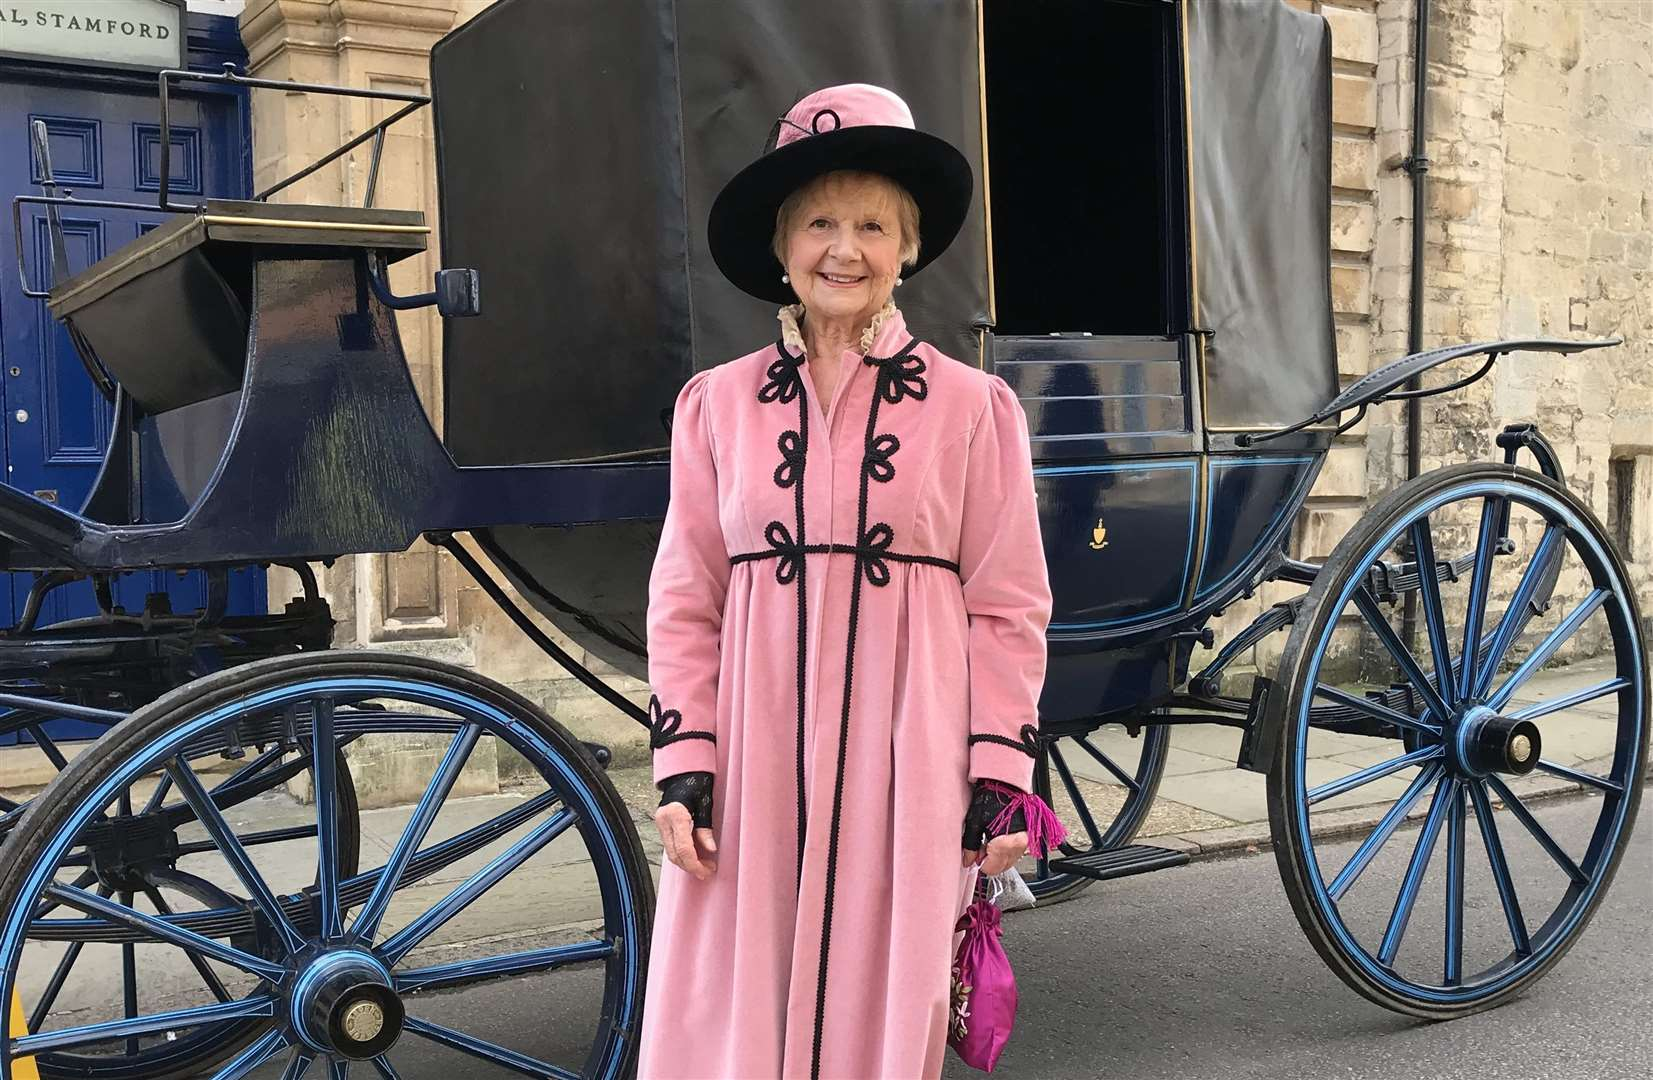 Jill Collinge, who has worked as a tour guide in Stamford for 25 years, often dressing for the role